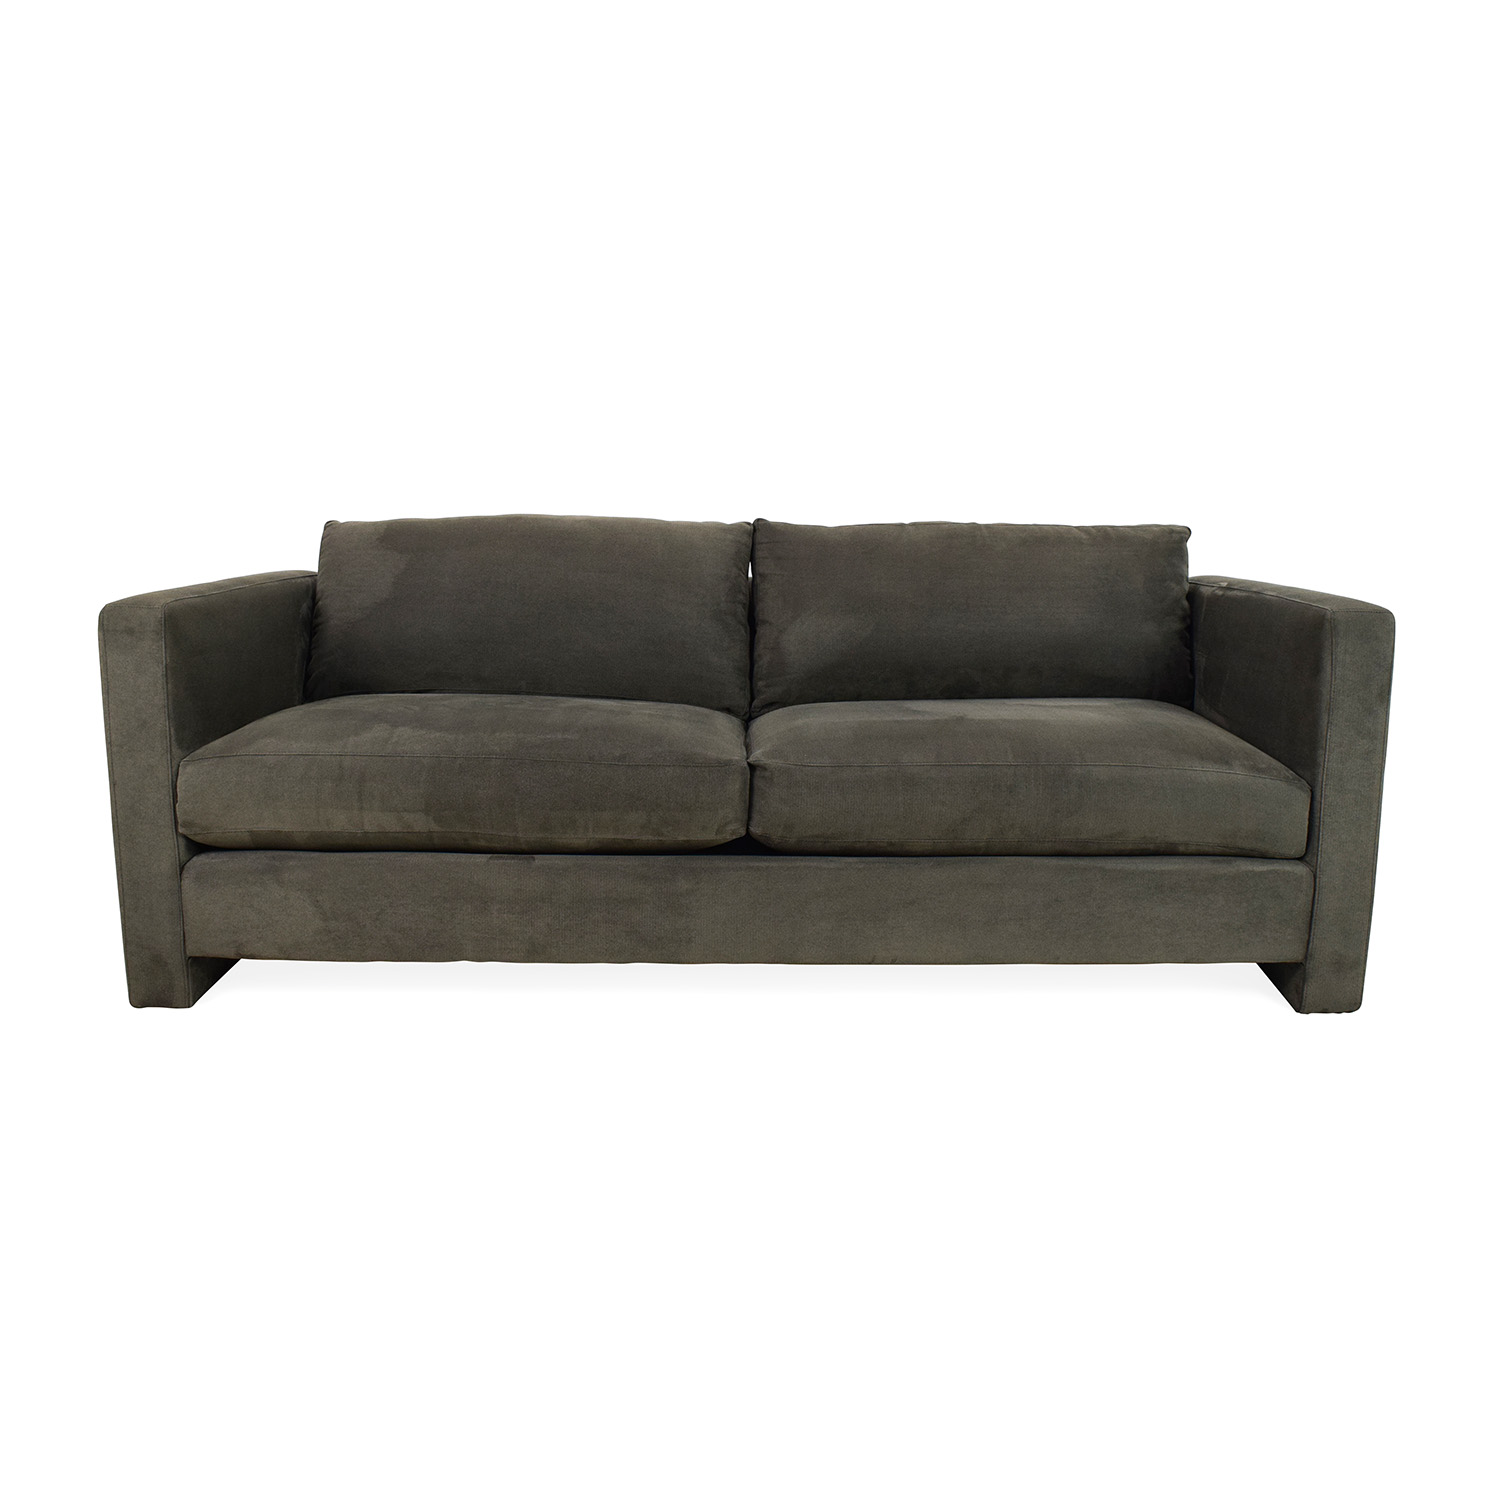 Classic sofas second hand classic sofas on sale for Gray sofas for sale